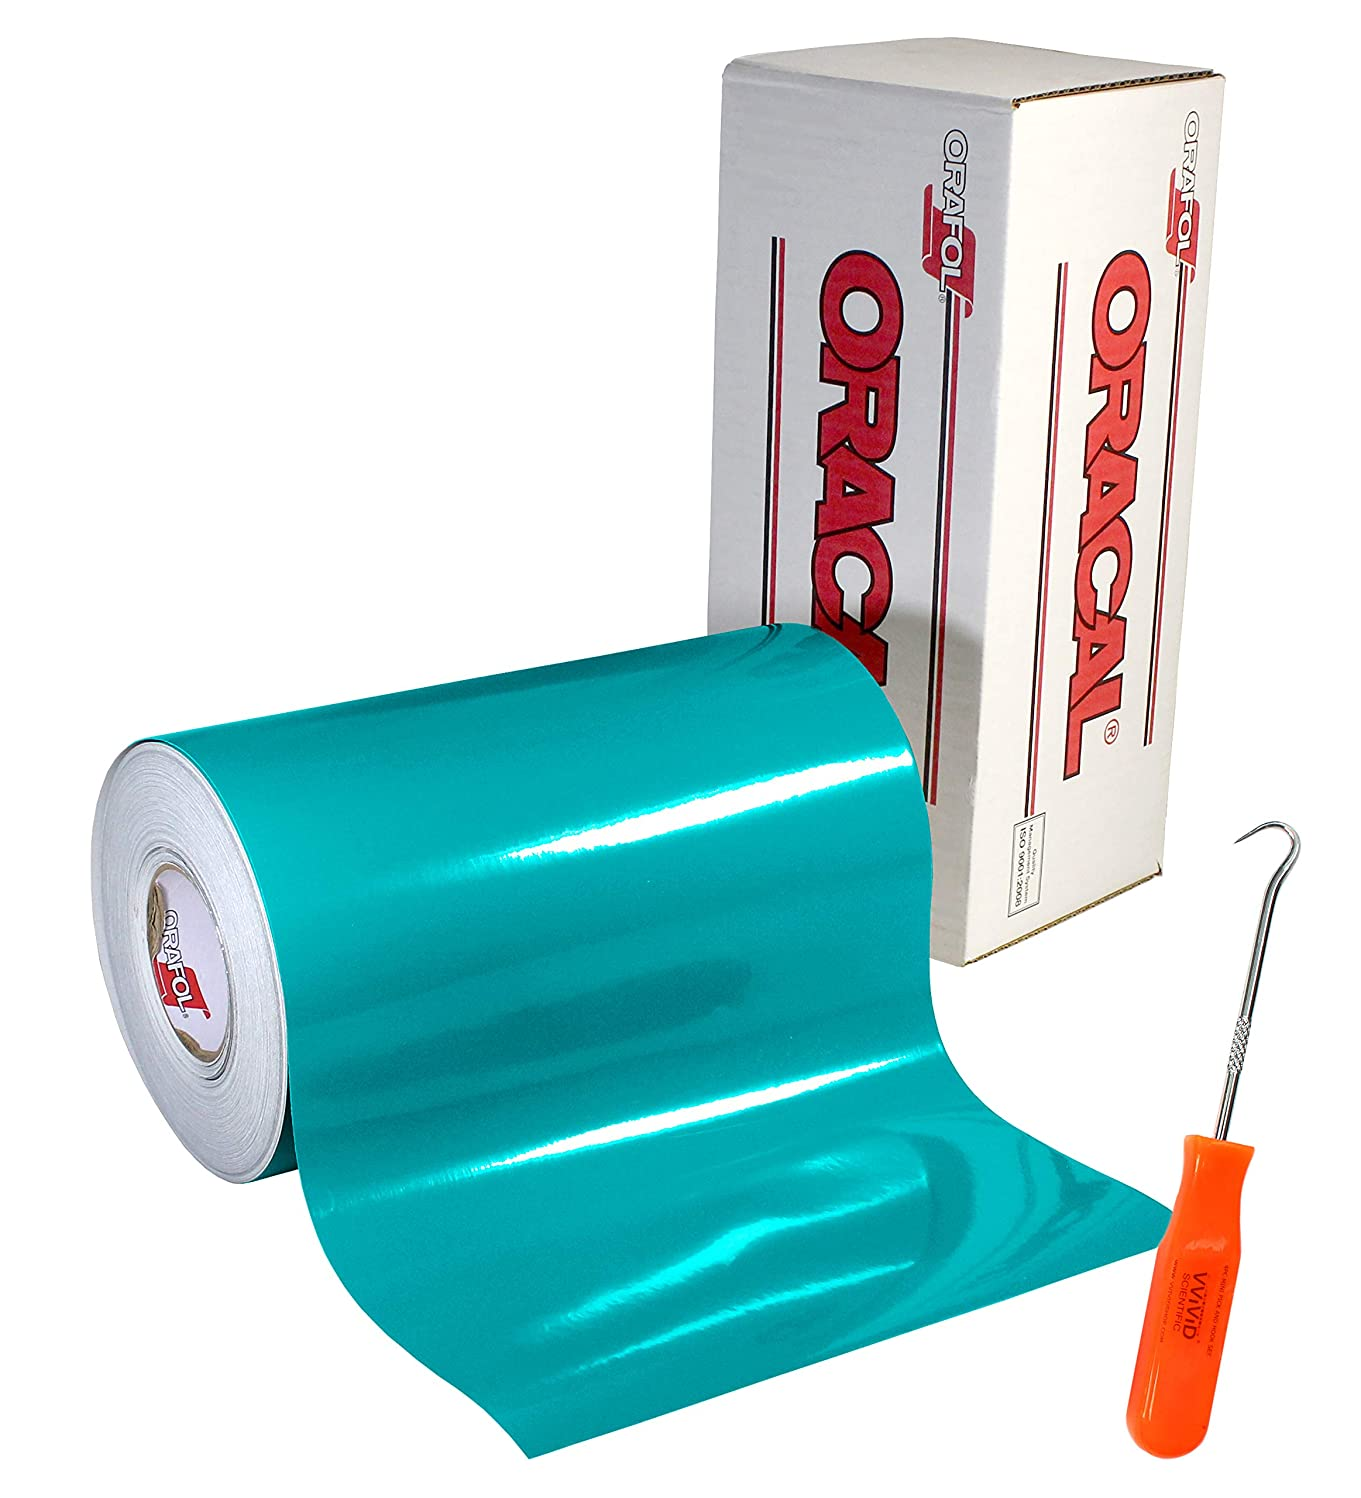 Oracal 651 Permanent Glossy Turquoise Adhesive Vinyl (12